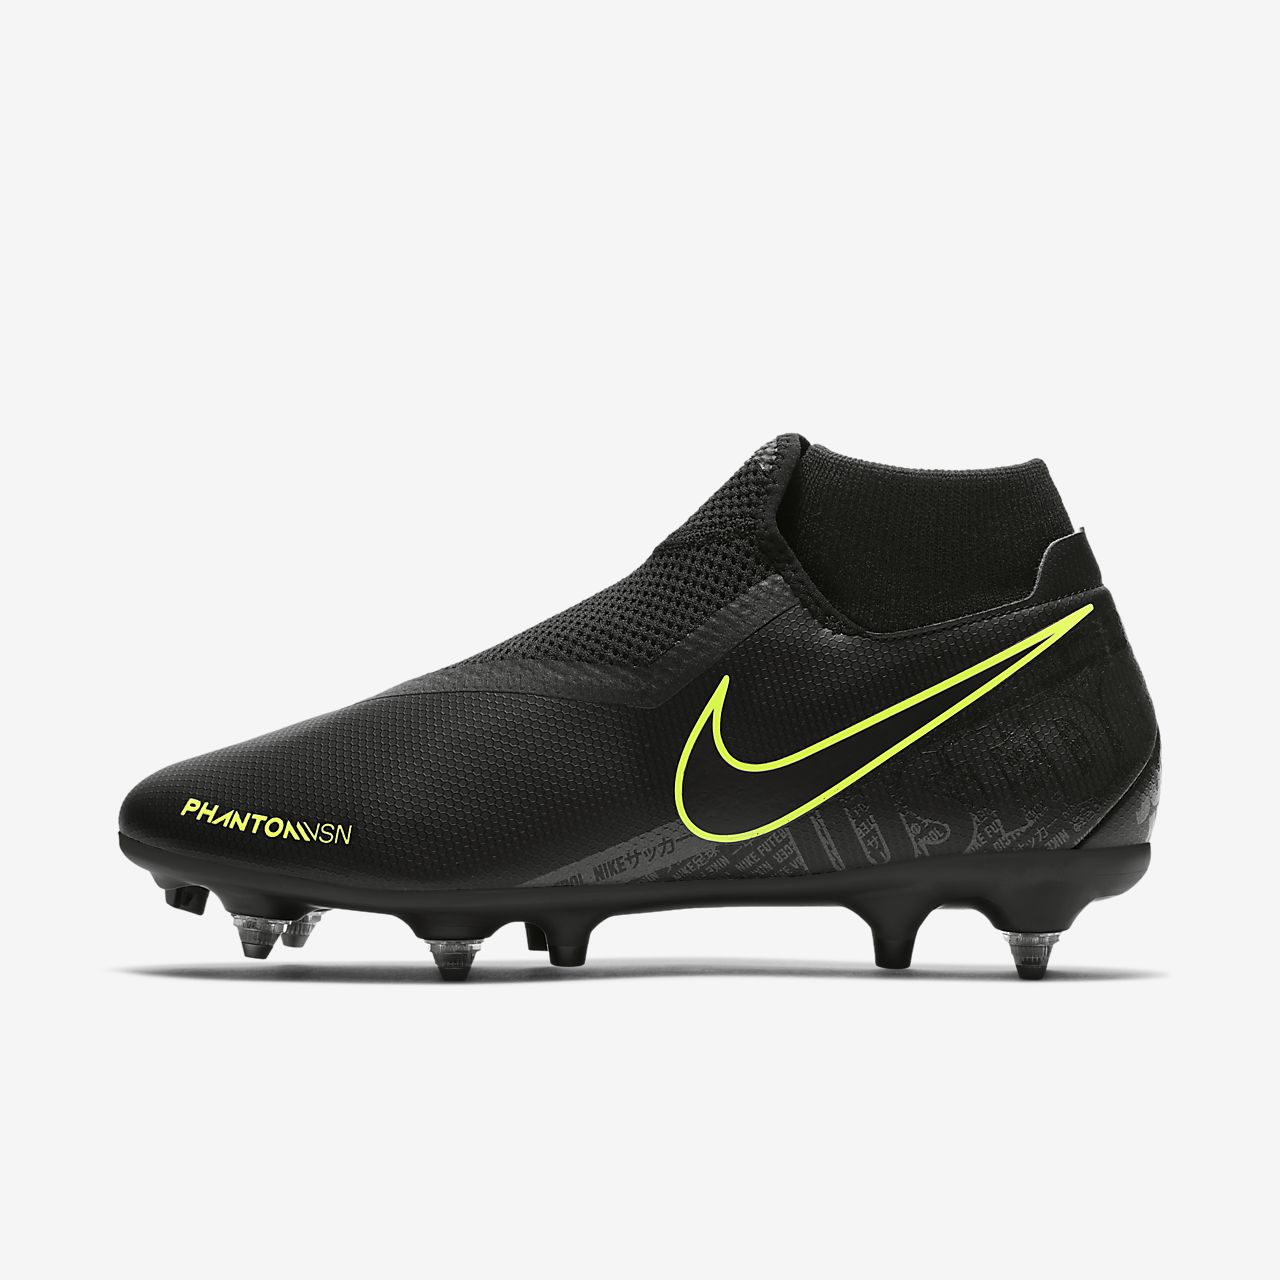 Nike PhantomVSN Academy Dynamic Fit SG-Pro Anti-Clog Traction Voetbalschoen (zachte ondergrond)